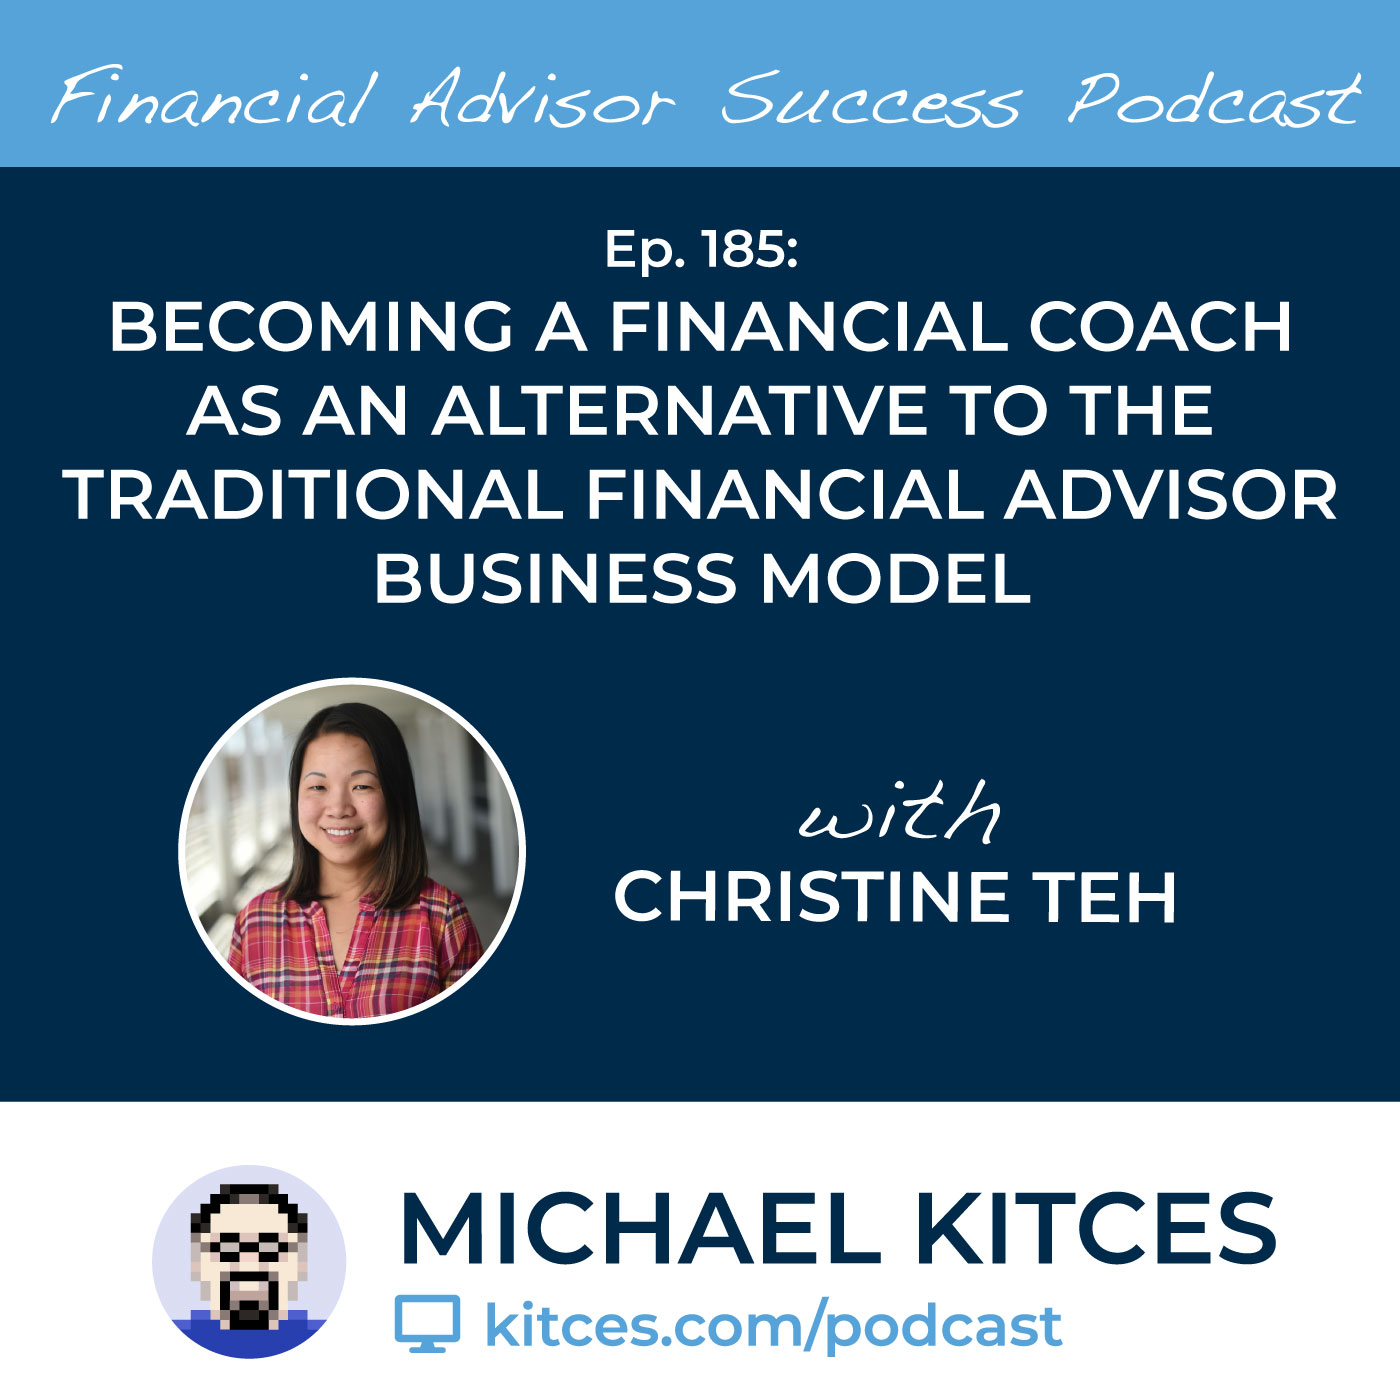 Ep 185: Becoming A Financial Coach As An Alternative To The Traditional Financial Advisor Business Model with Christine Teh